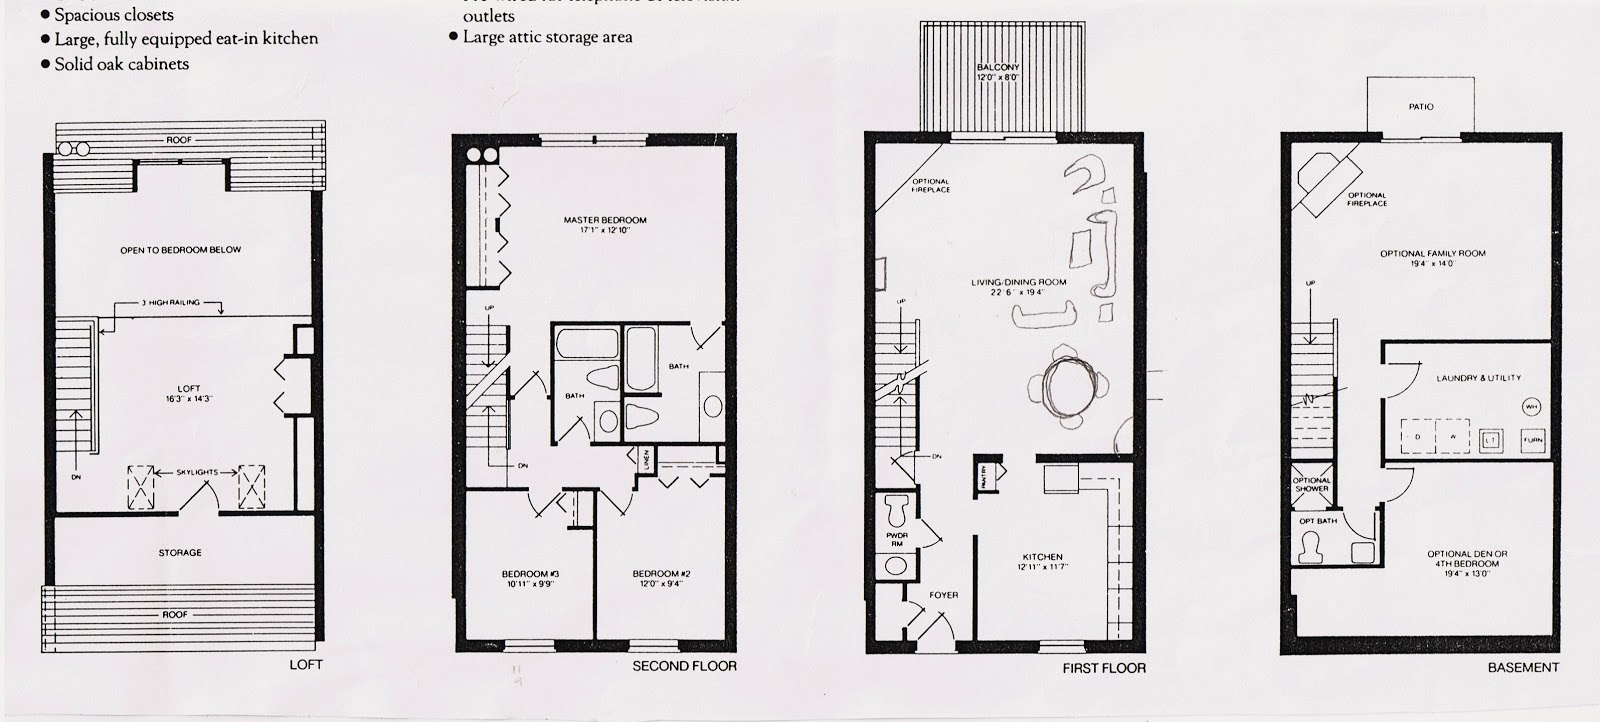 5 x 8 bathroom floor plans - Small Bathroom Floor Plans 5 X 8 Hd Gallery